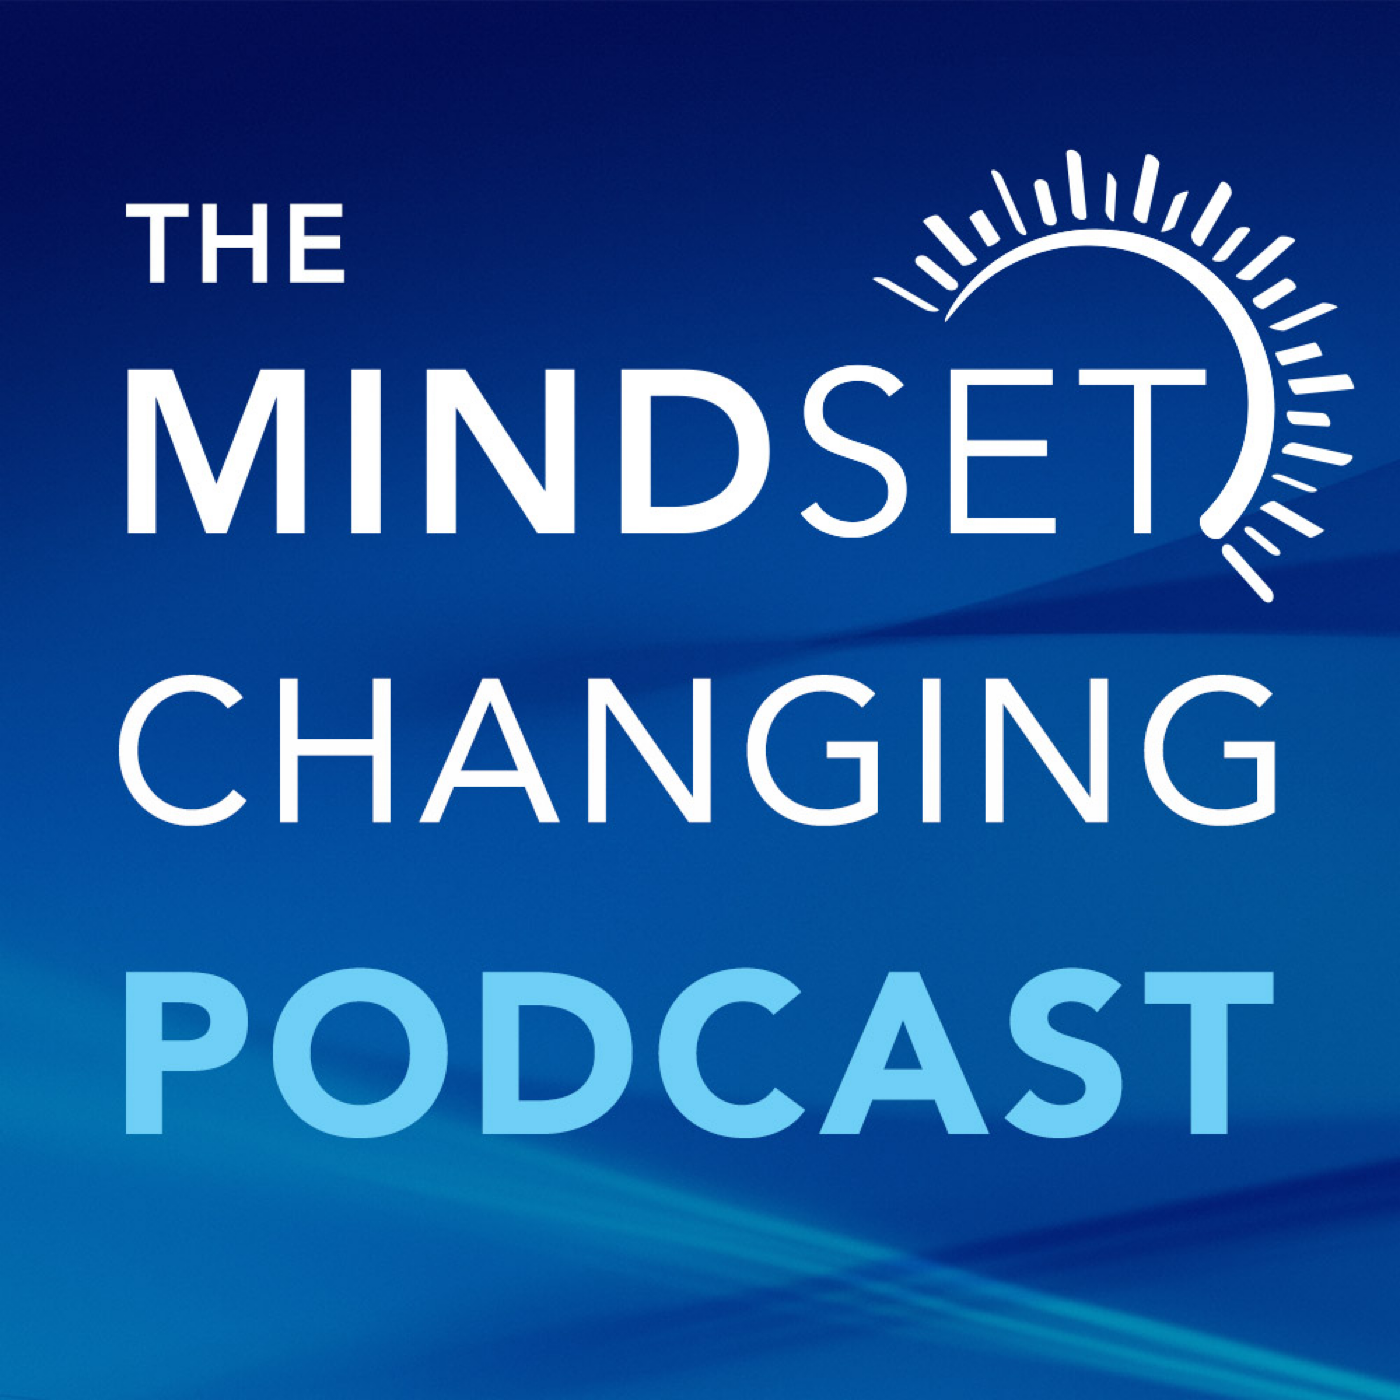 The Mindset Changing Podcast show art